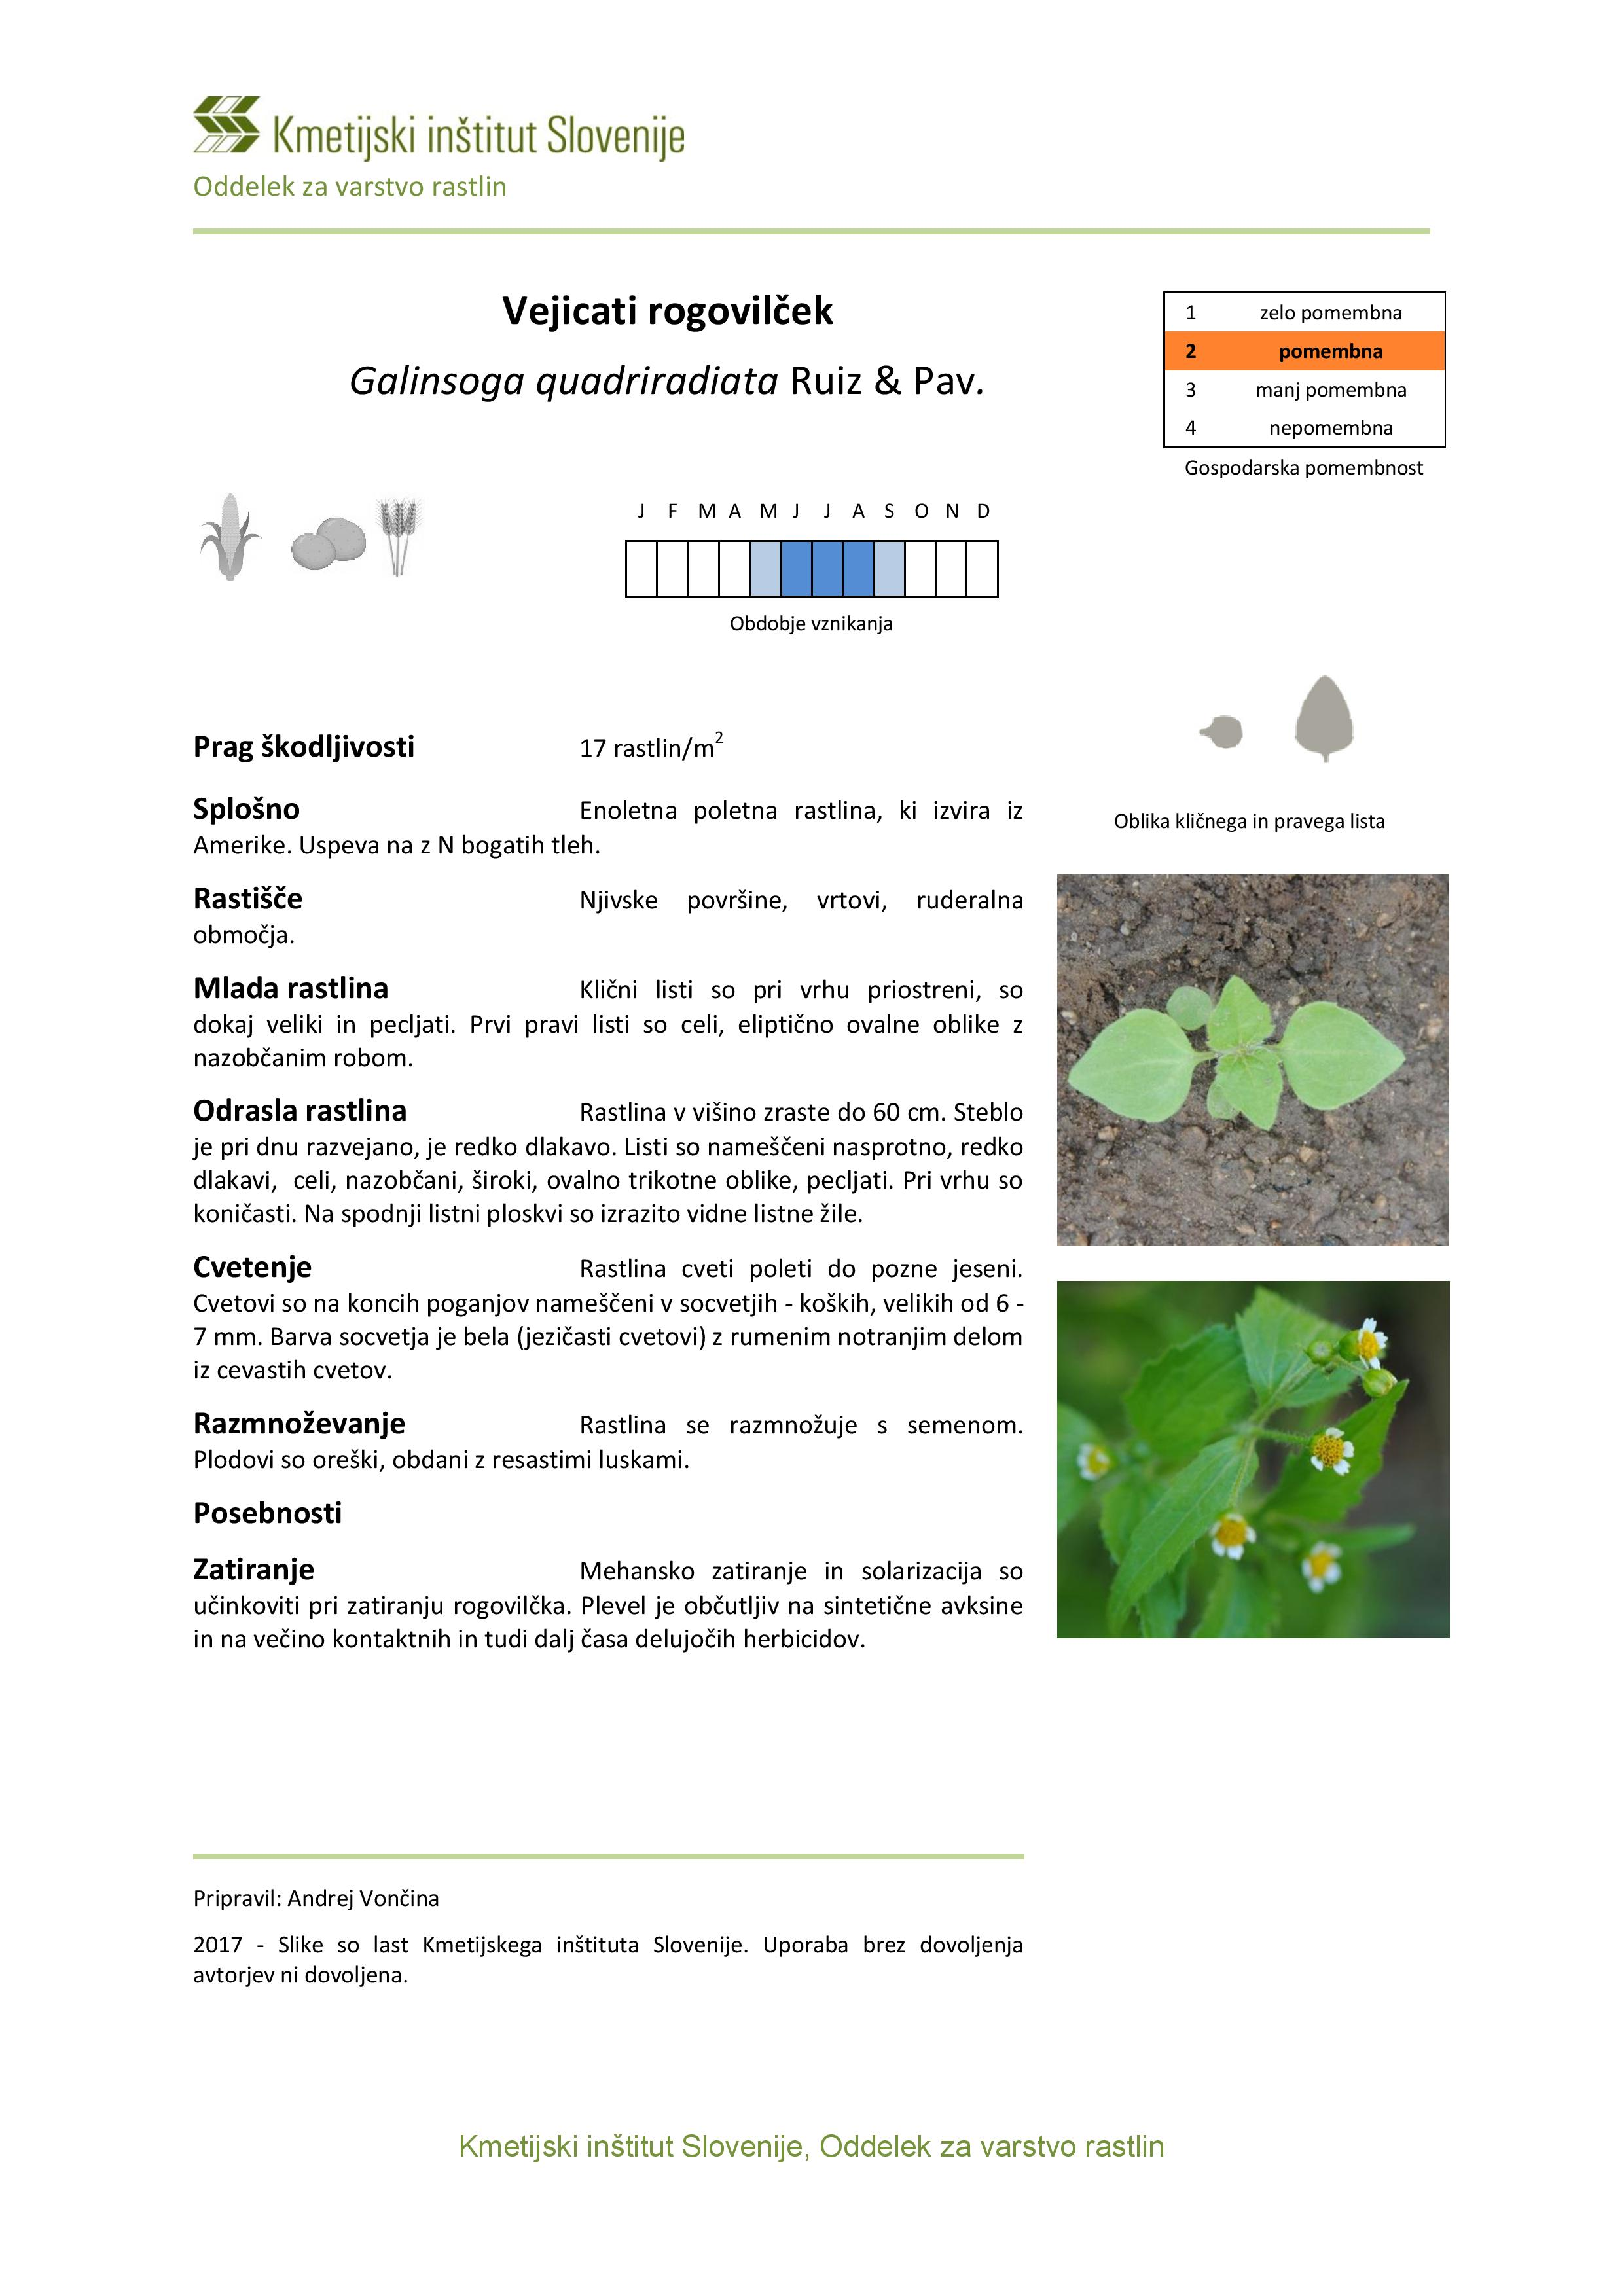 Galinsoga_quadriradiata-page-001